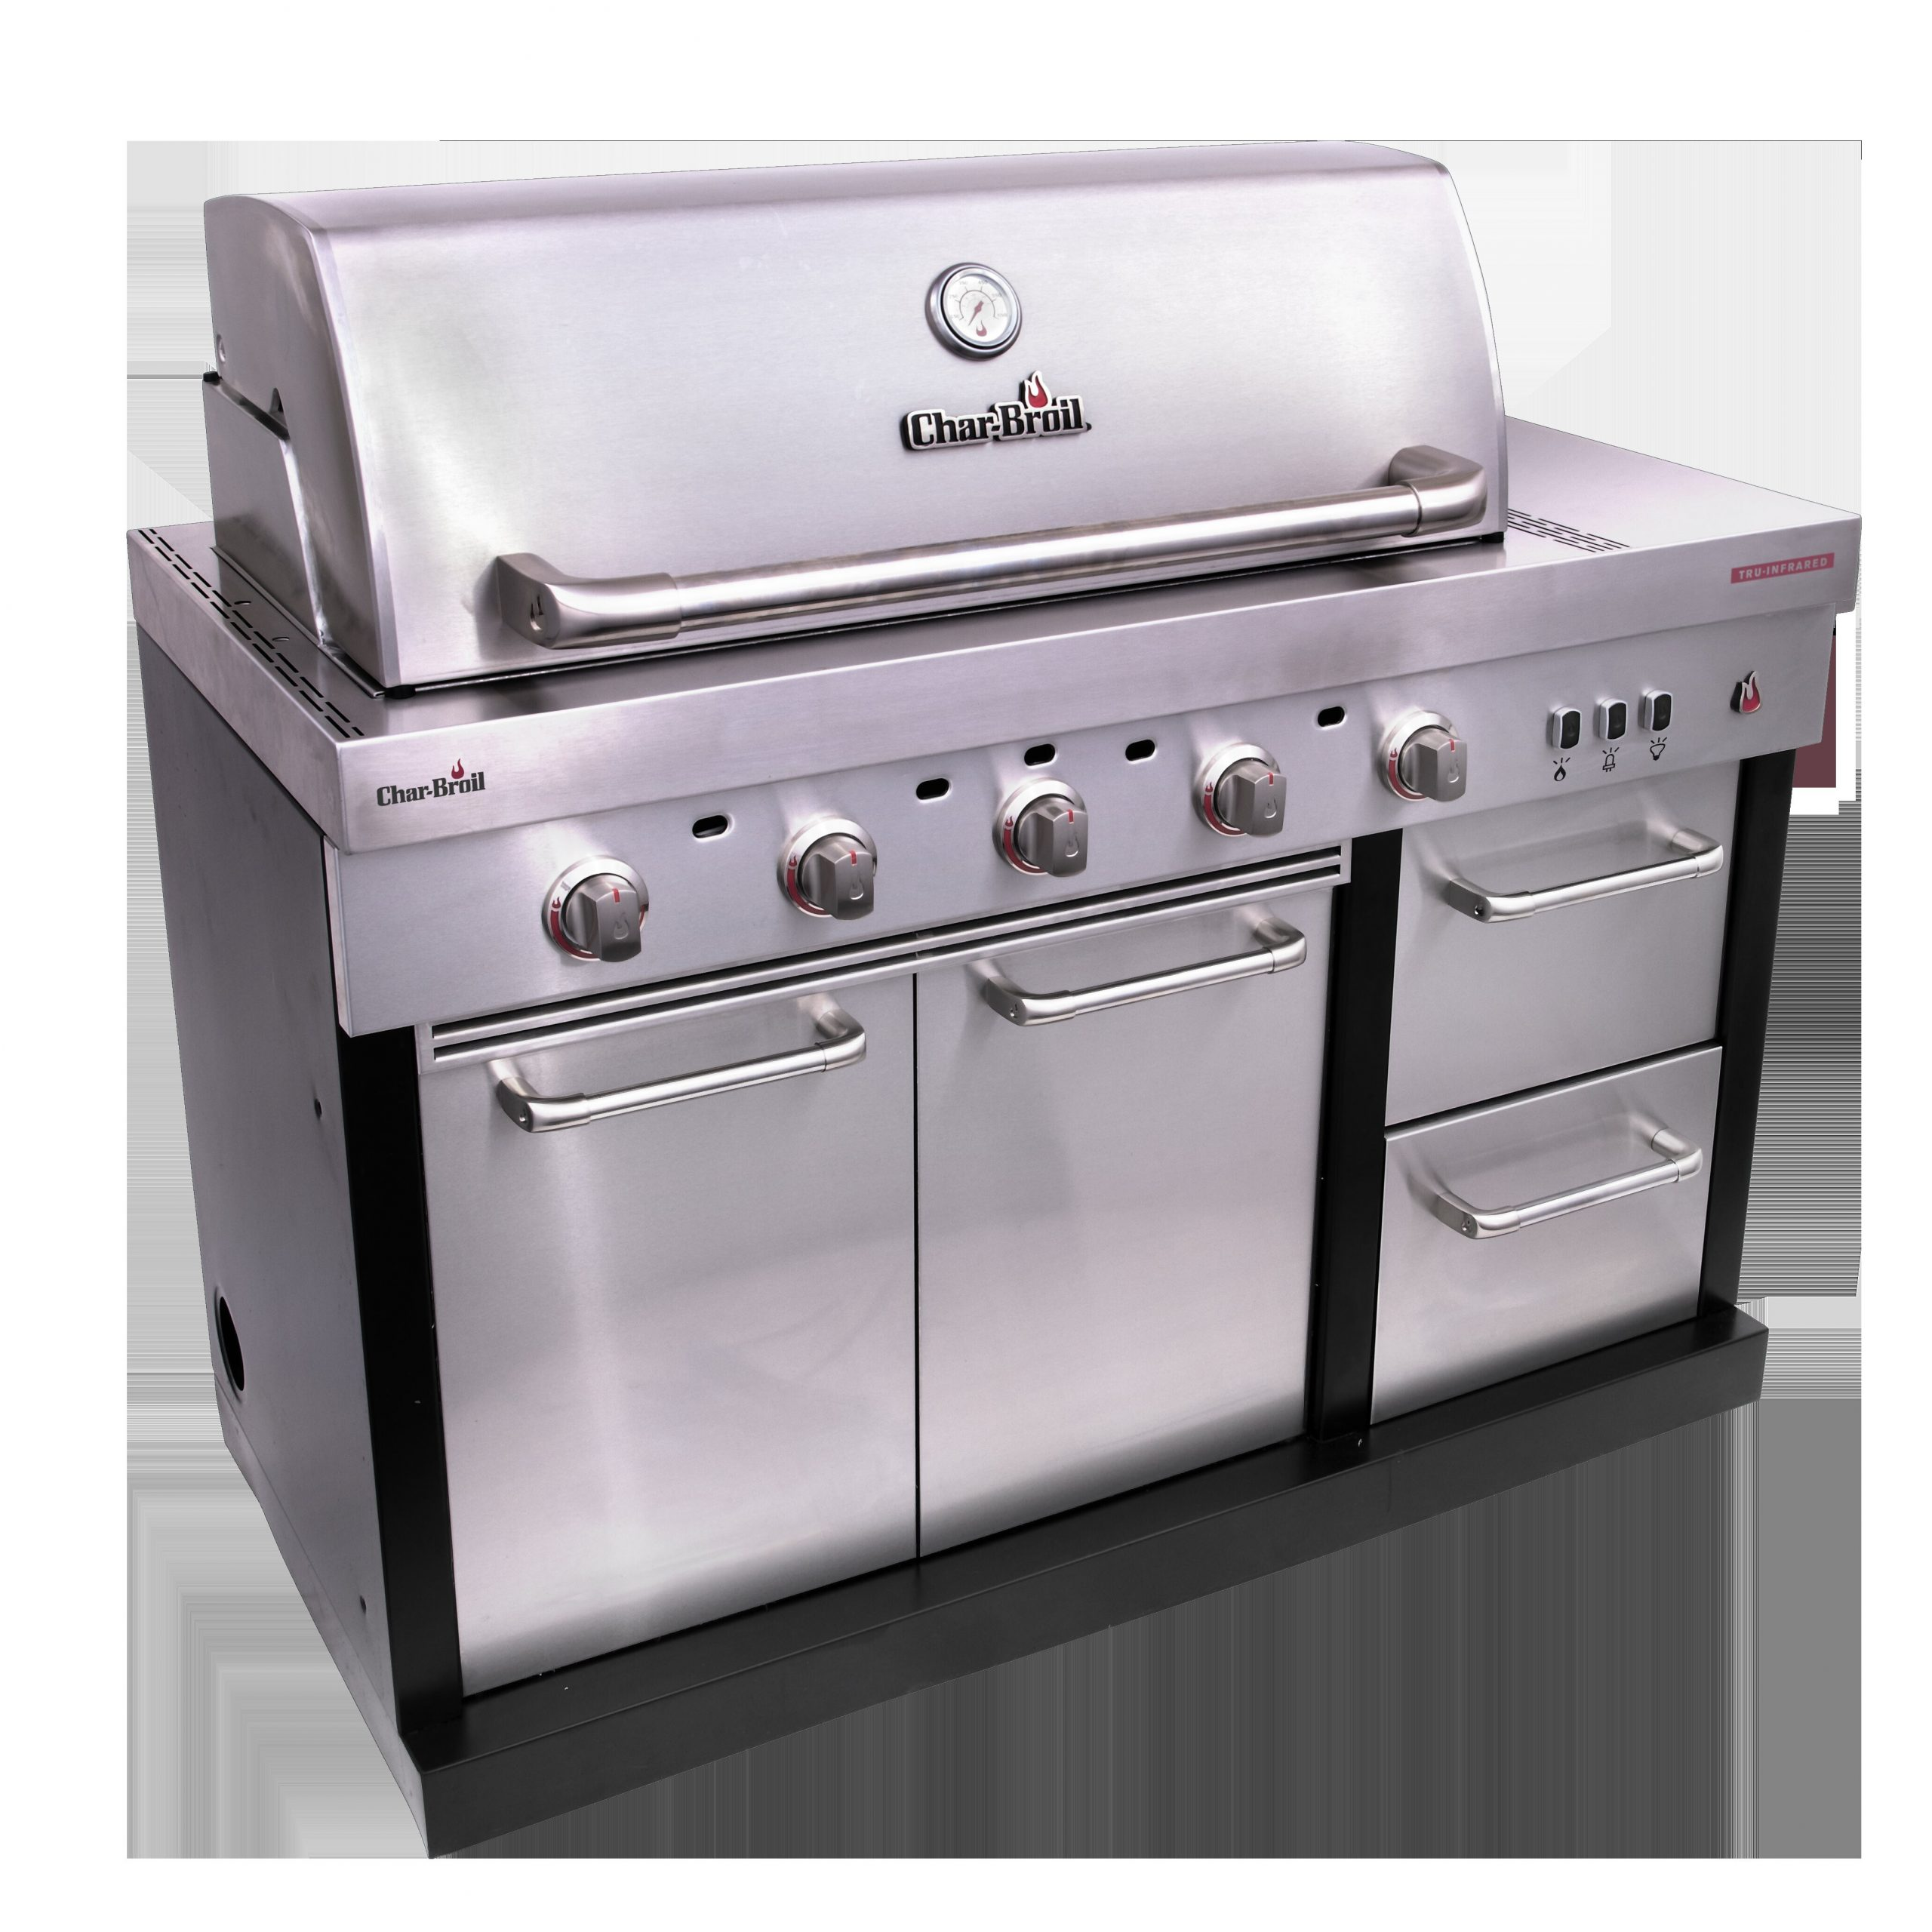 Charbroil 463246118 Wiring Diagram Char-broil Medallion Series 5-burner Propane Gas Grill Of Charbroil 463246118 Wiring Diagram